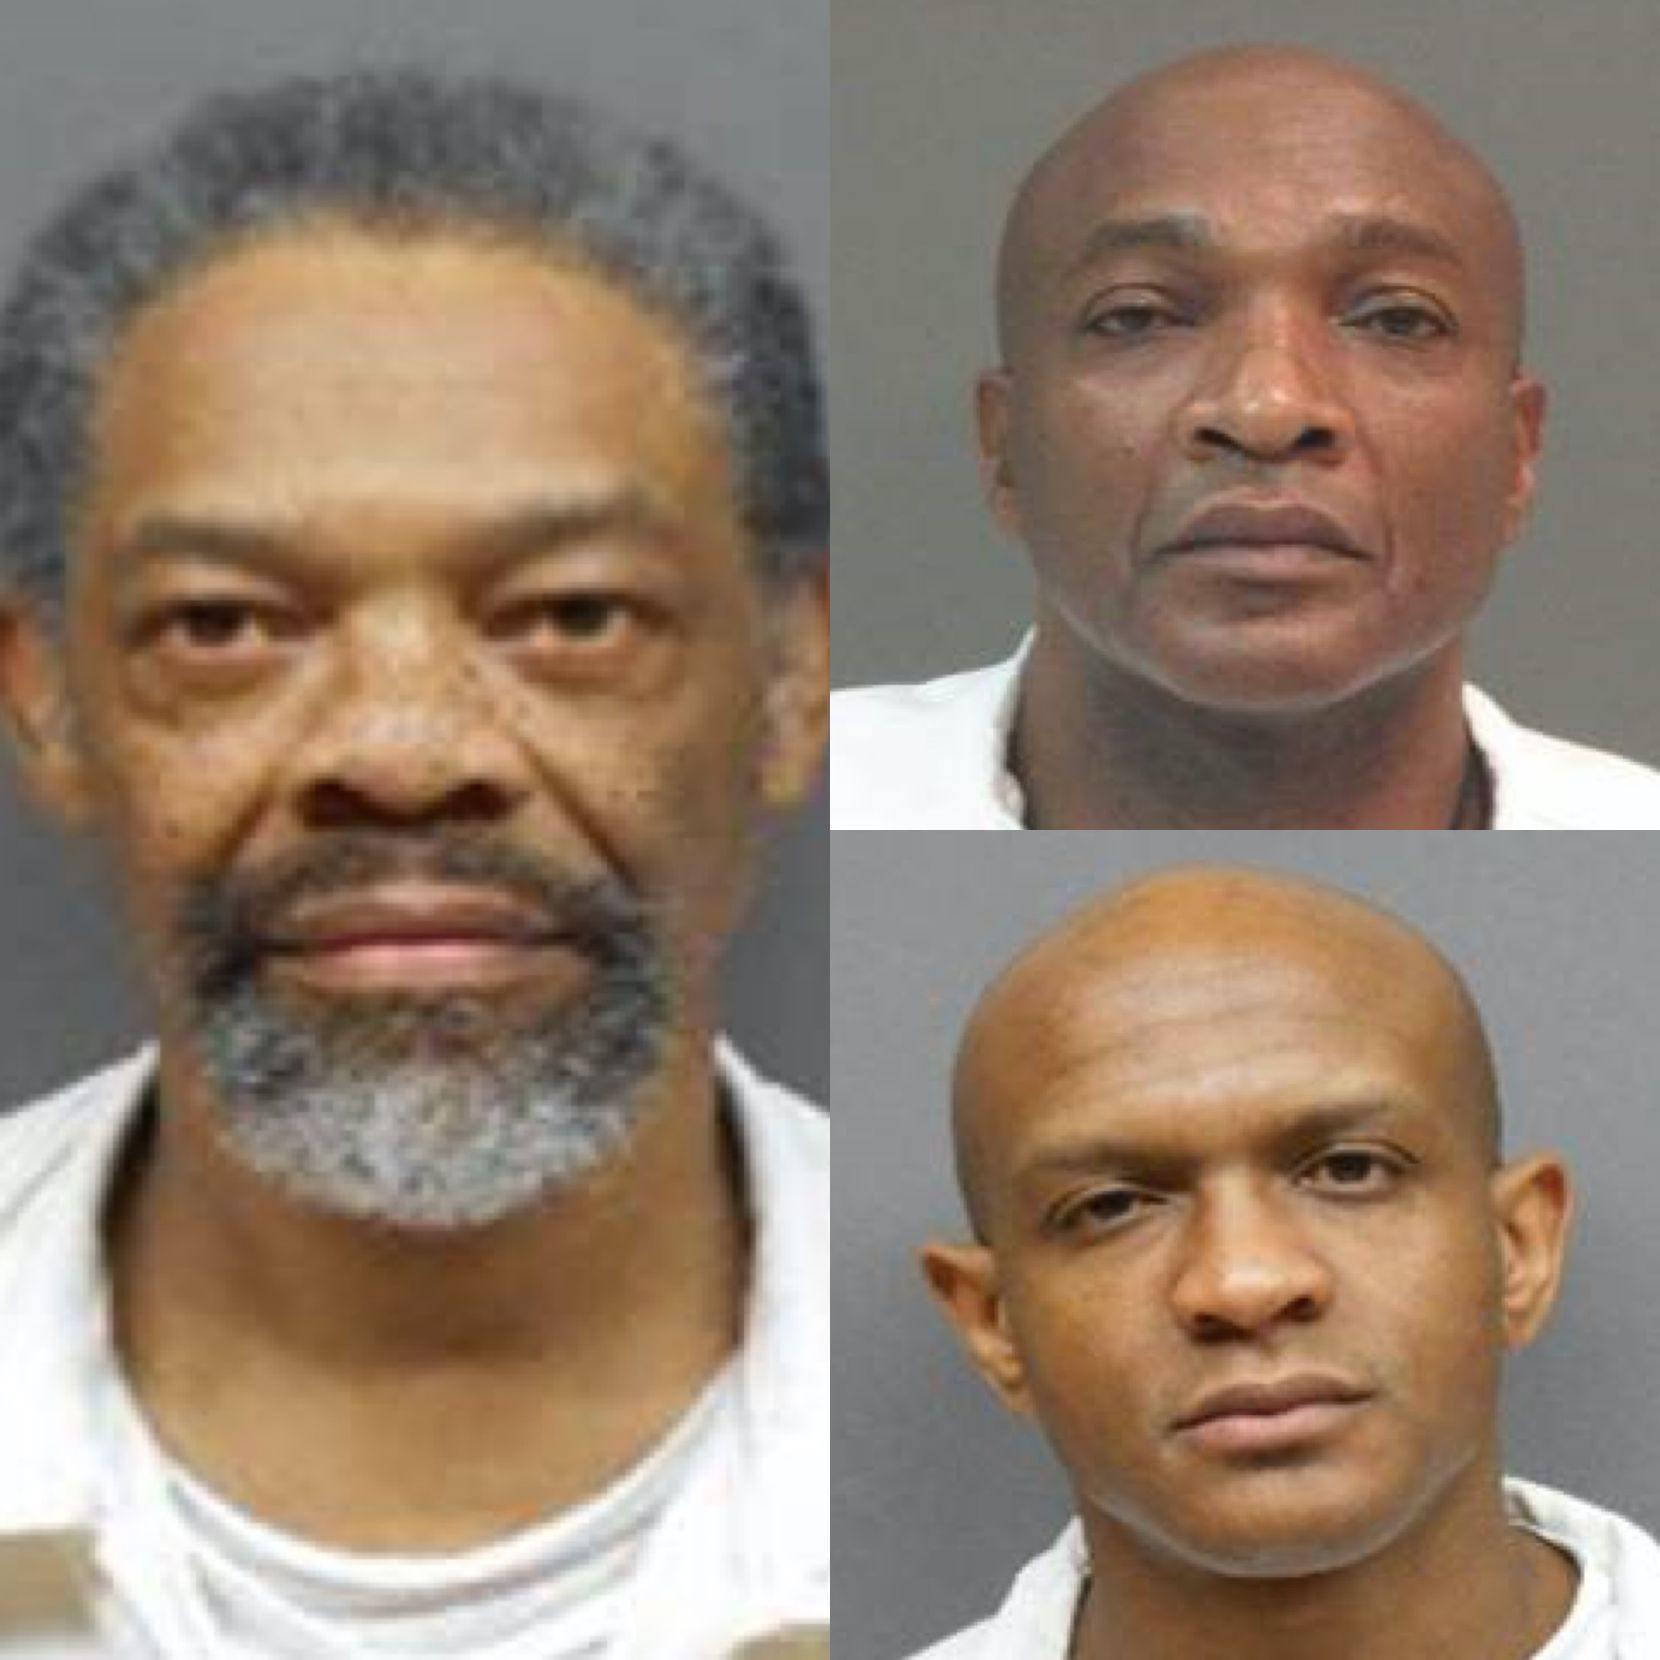 Artis Armour, Jessie Paul Skinner and Johnny Lee Walker (clockwise from left) are suing the Texas Department of Criminal Justice, alleging the extreme temperatures behind bars amount to cruel and unusual punishment.